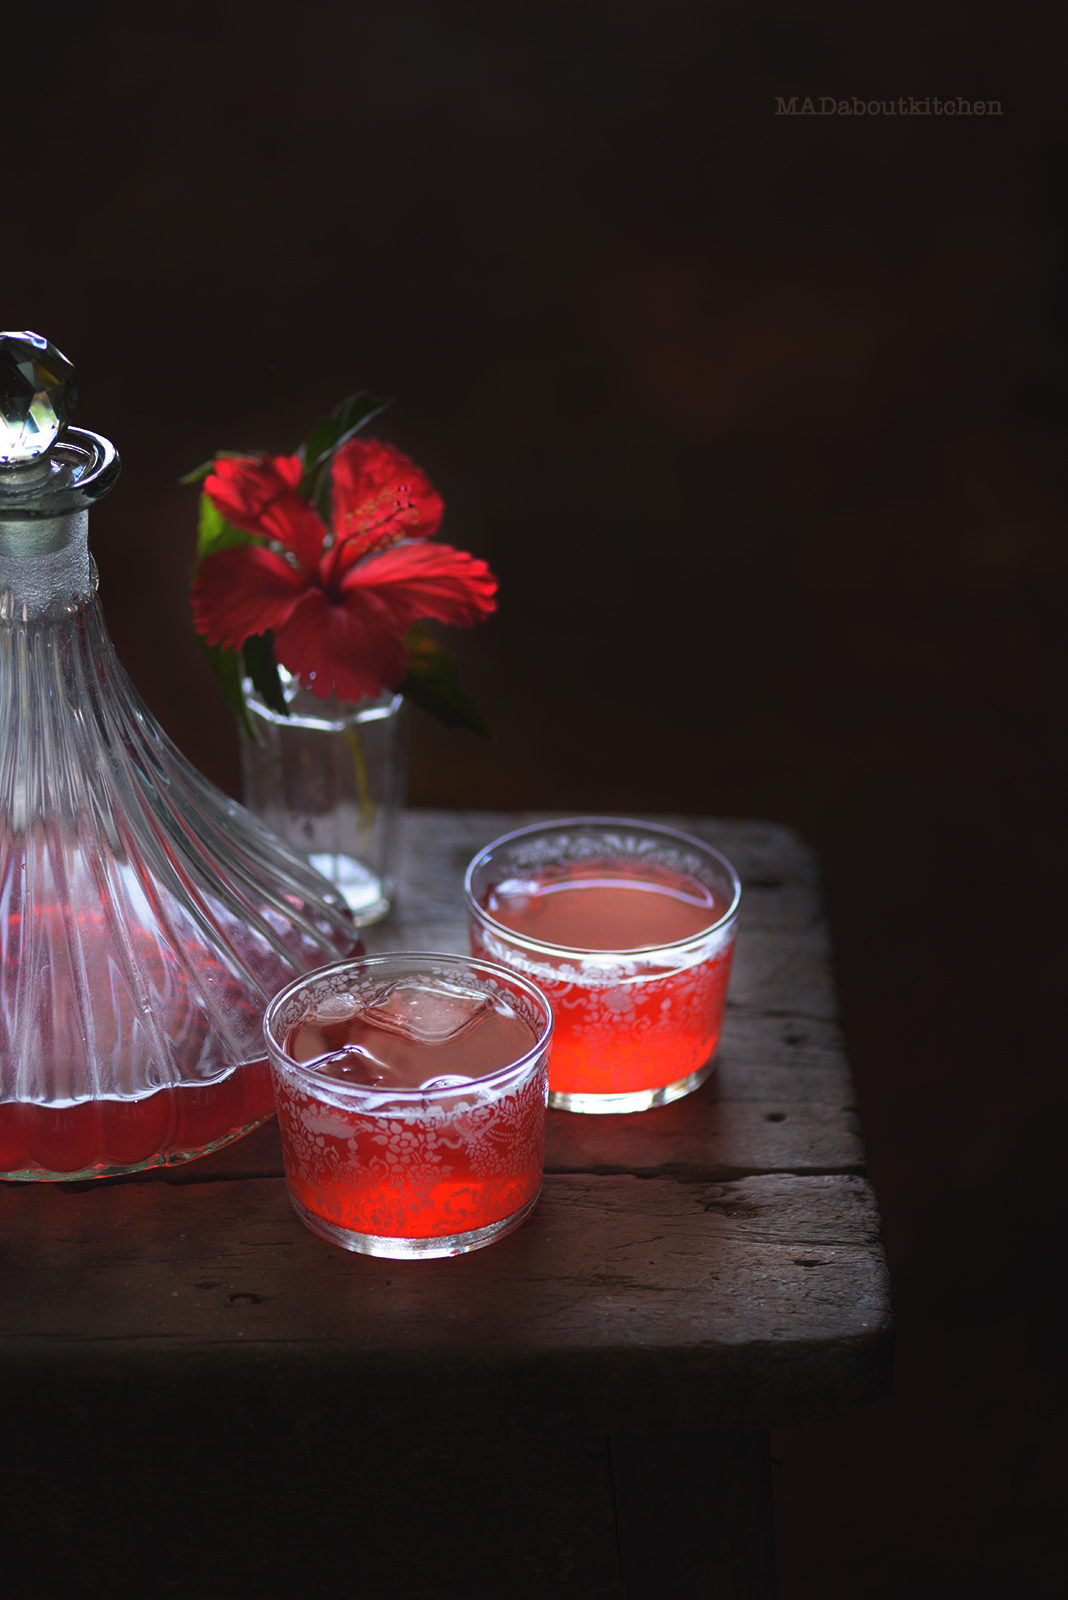 Hibiscus Tea is one of the prettiest and easiest to make at home. Here is a super easy recipe for you to follow and make this homemade, infused tea.